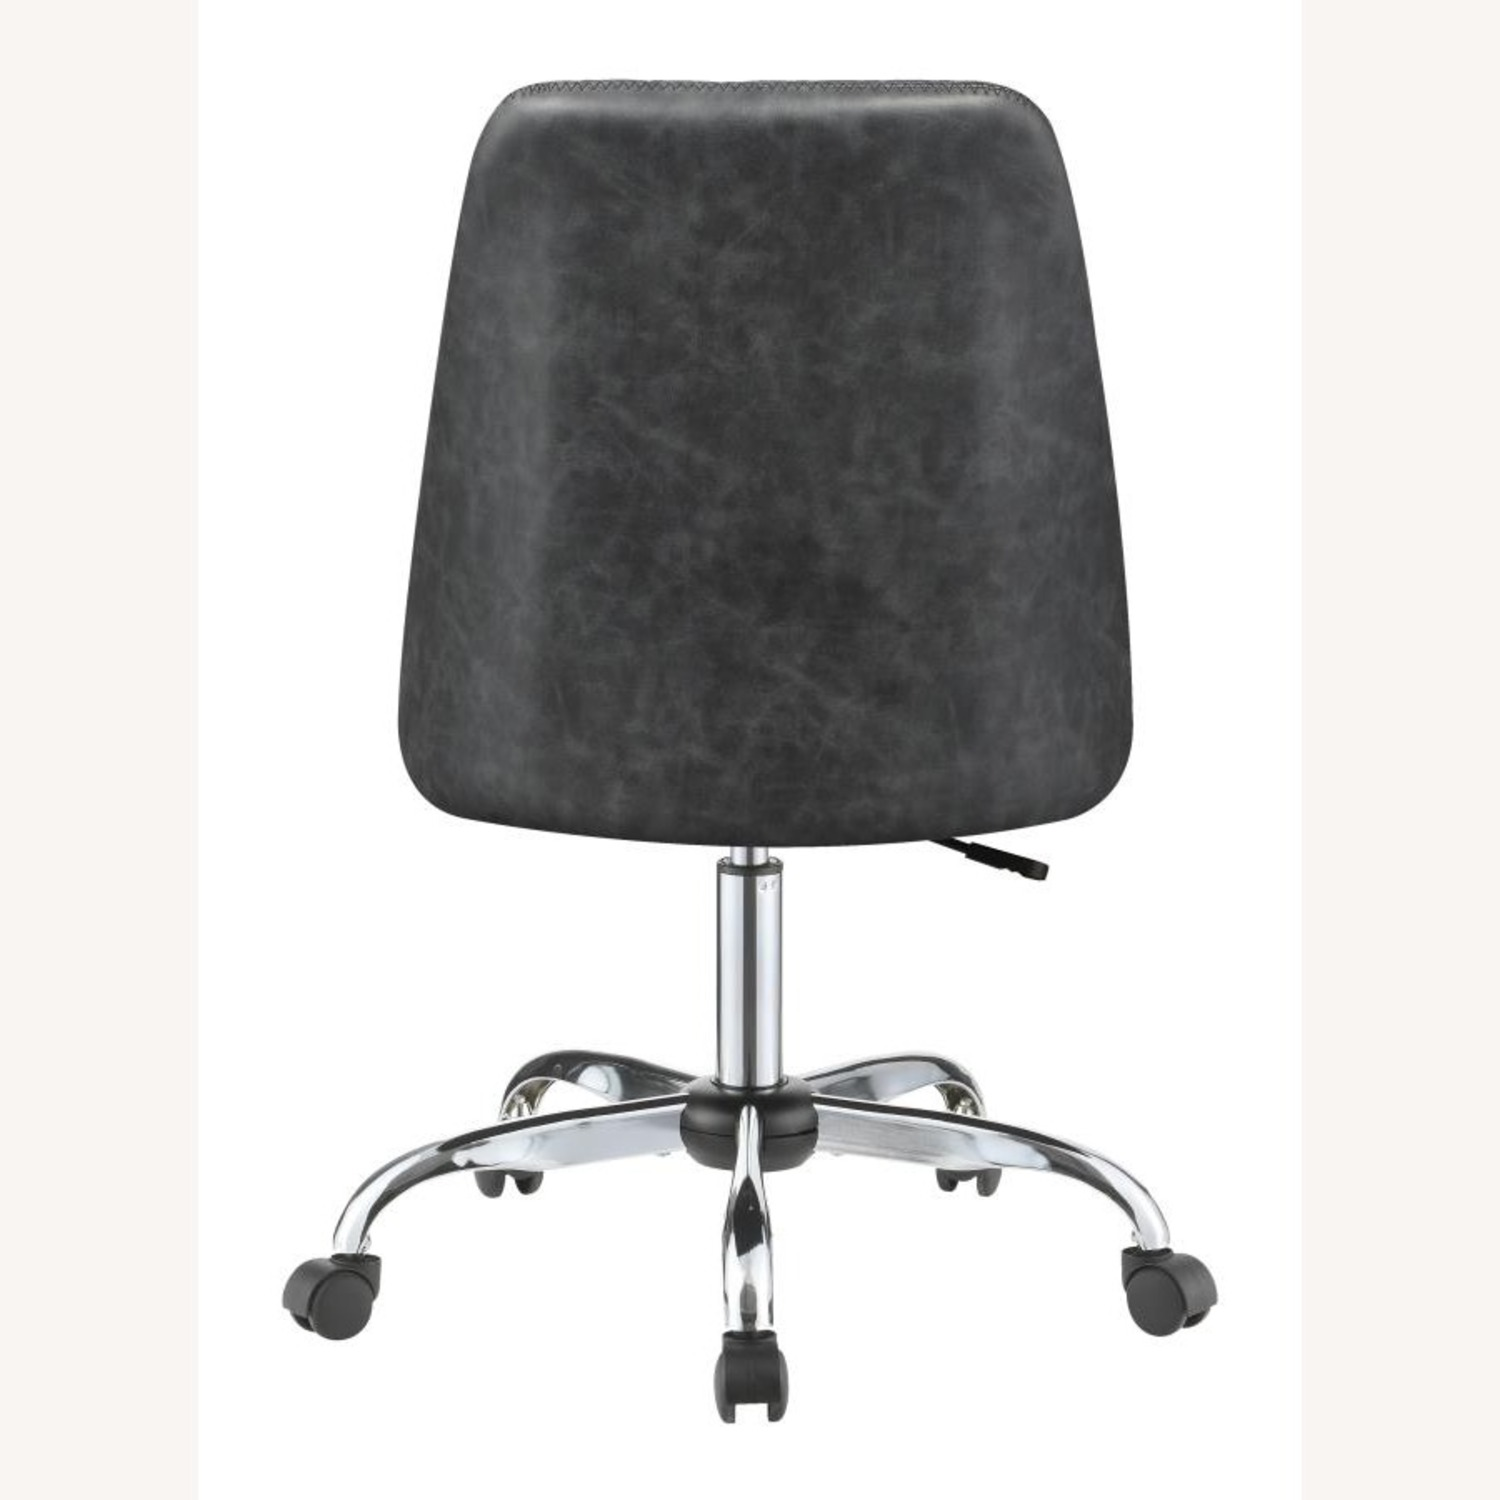 Office Chair In Tufted Grey Leatherette Upholstery - image-4